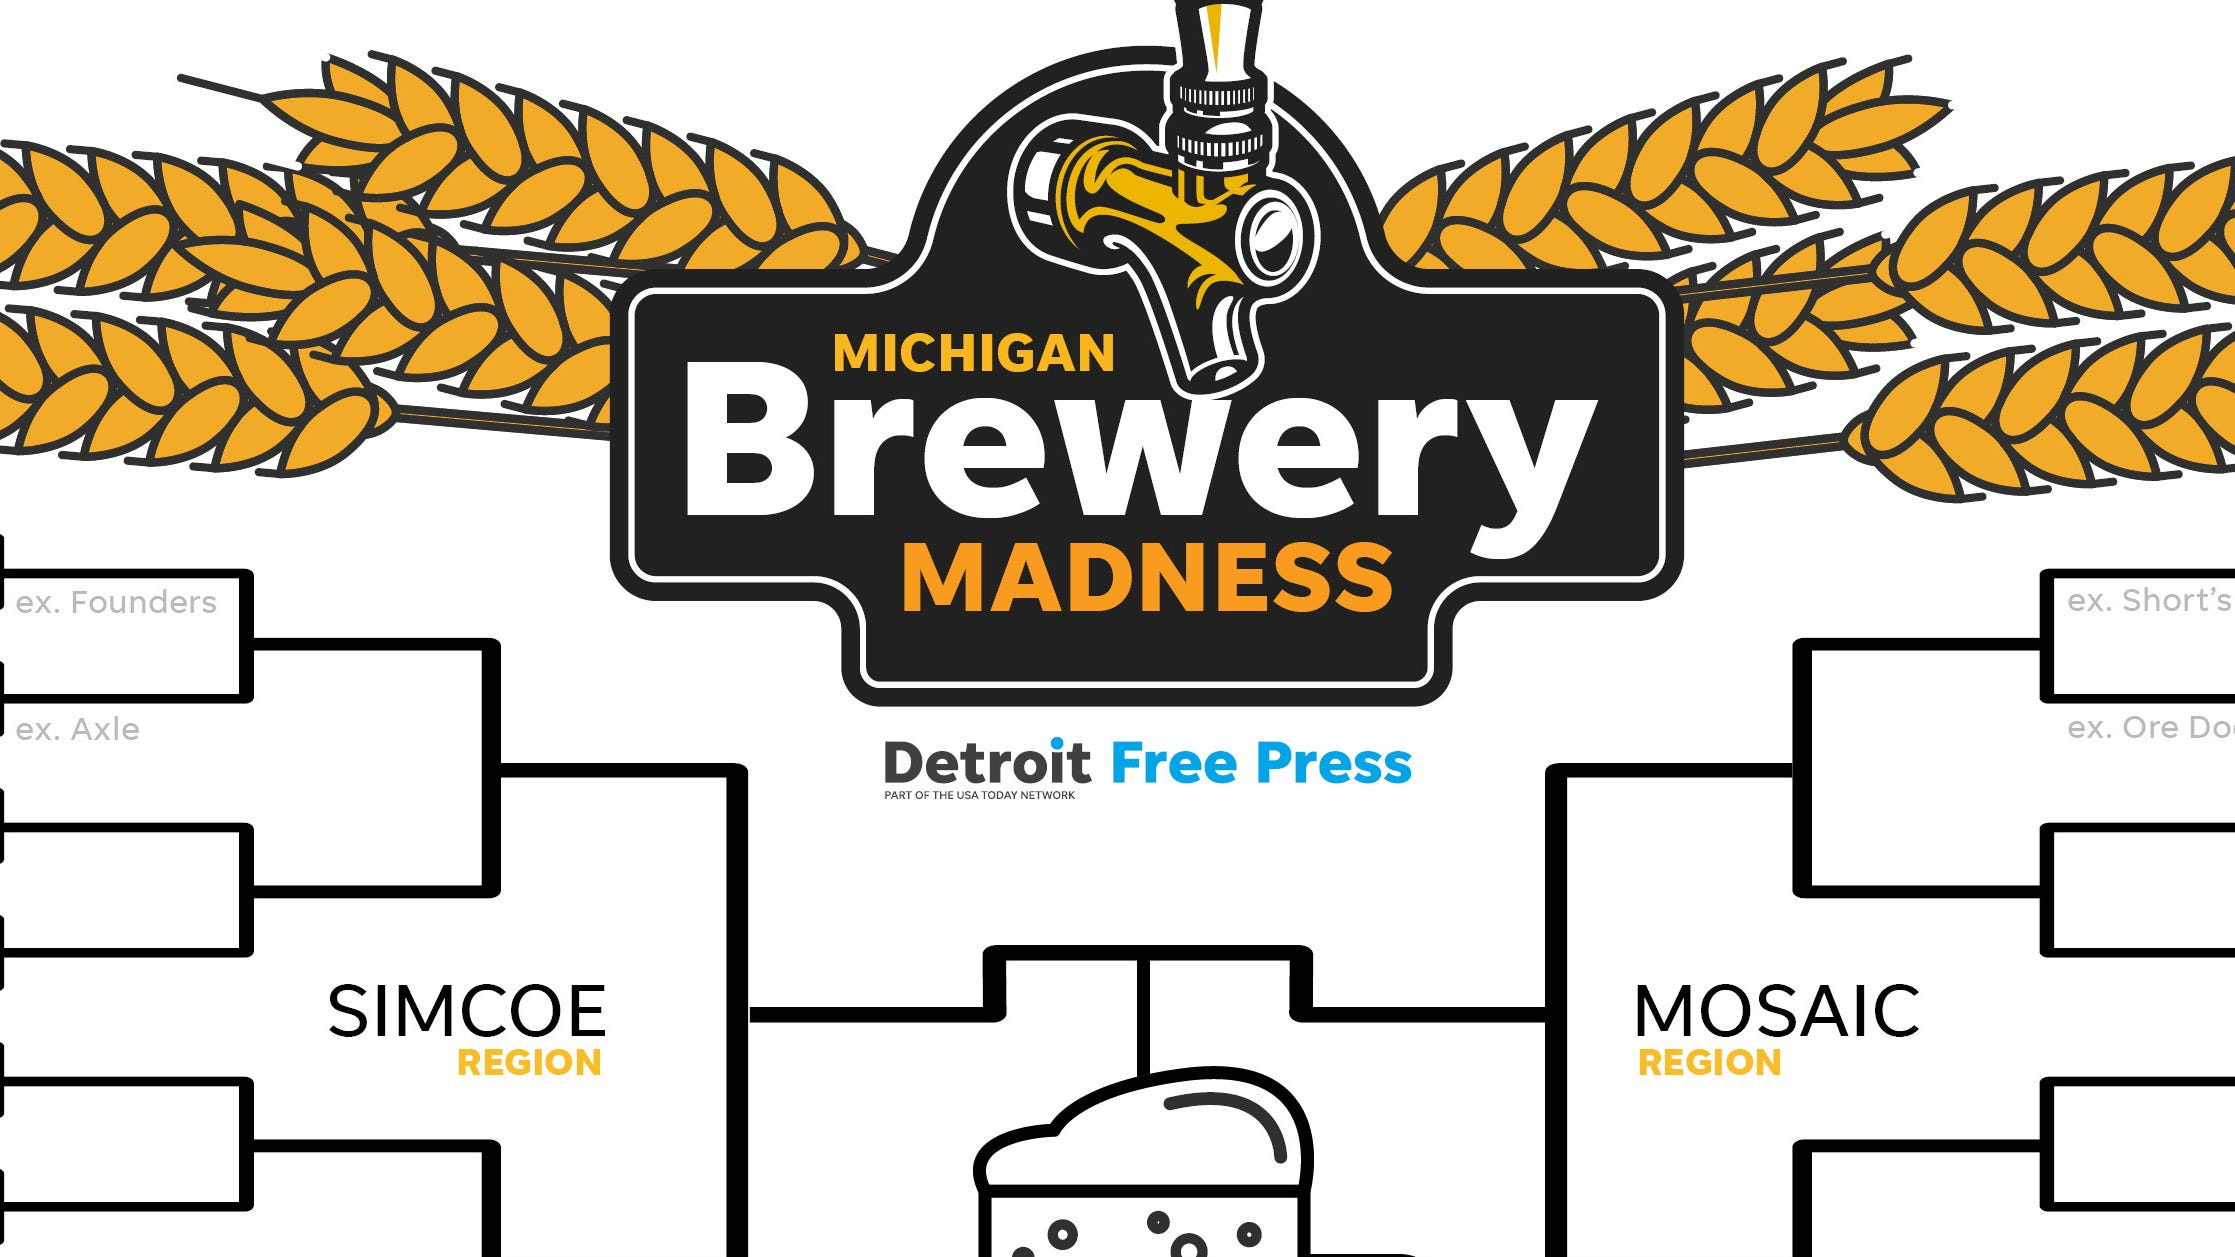 It's 2019 Michigan Brewery Madness! Vote for the best brewery in Michigan